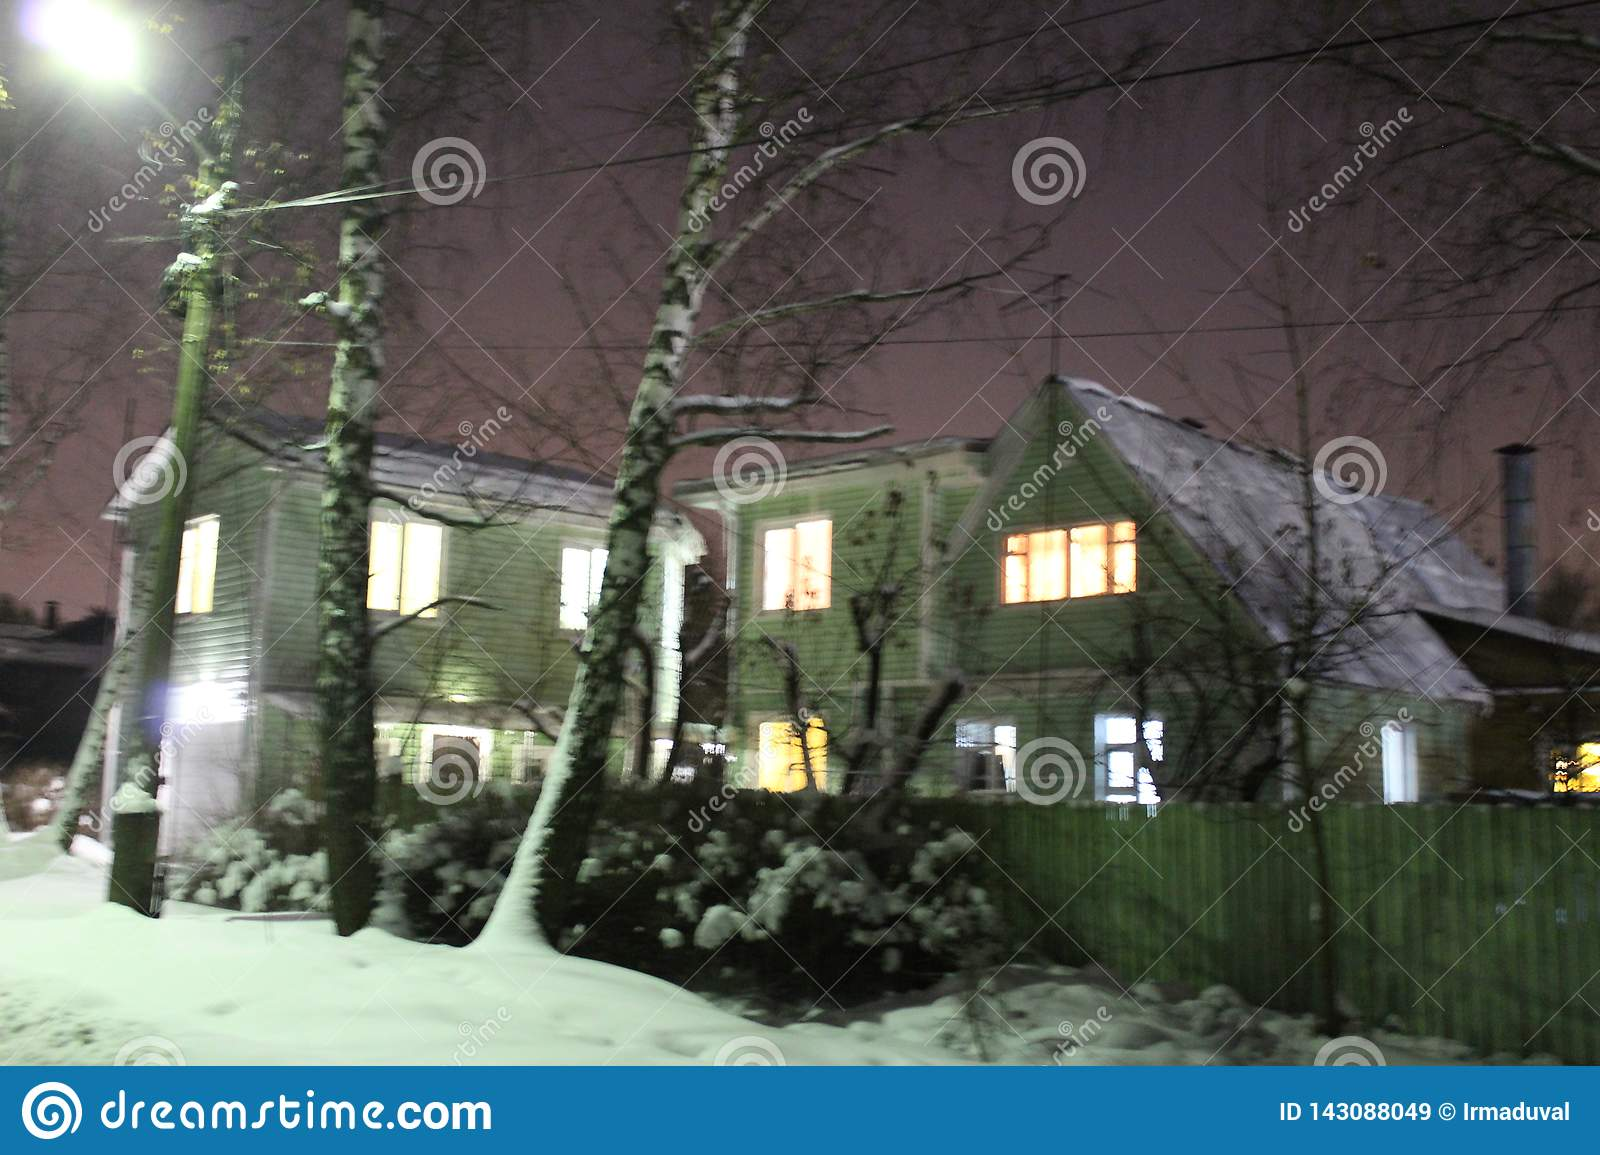 When Is Russian Christmas.Russian Winter Home Stock Image Image Of Christmas 143088049